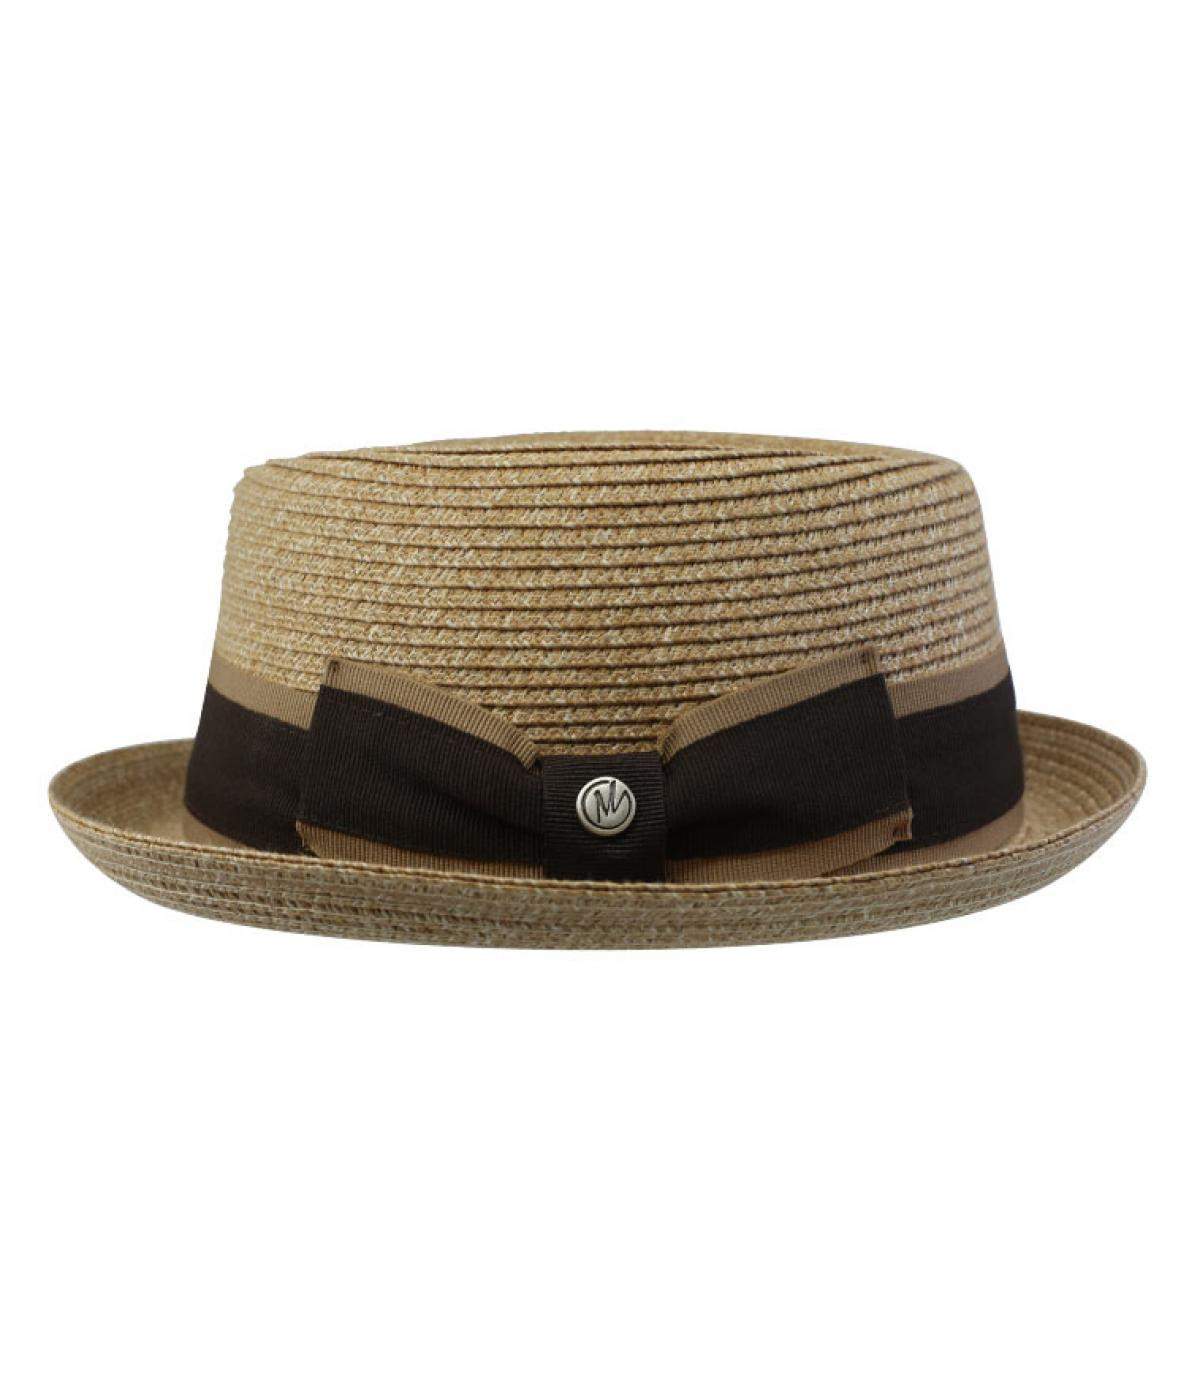 Beige Straw Hat Ribbon Dudley Natural By M By Flechet Headict